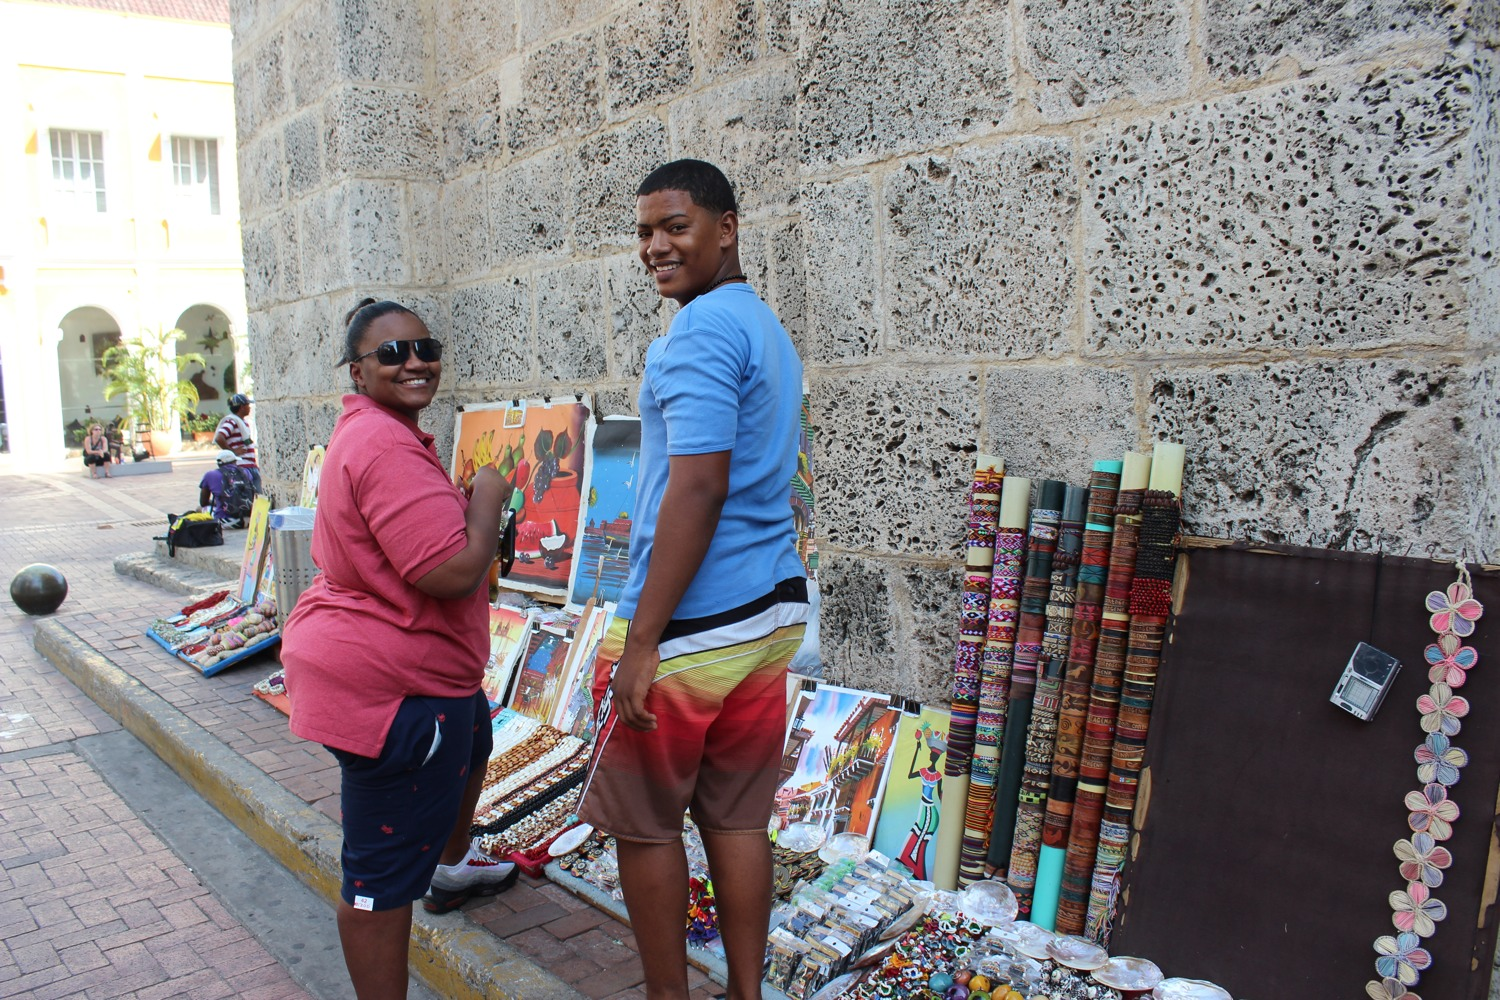 Shopping in Old City, Cartagena Colombia